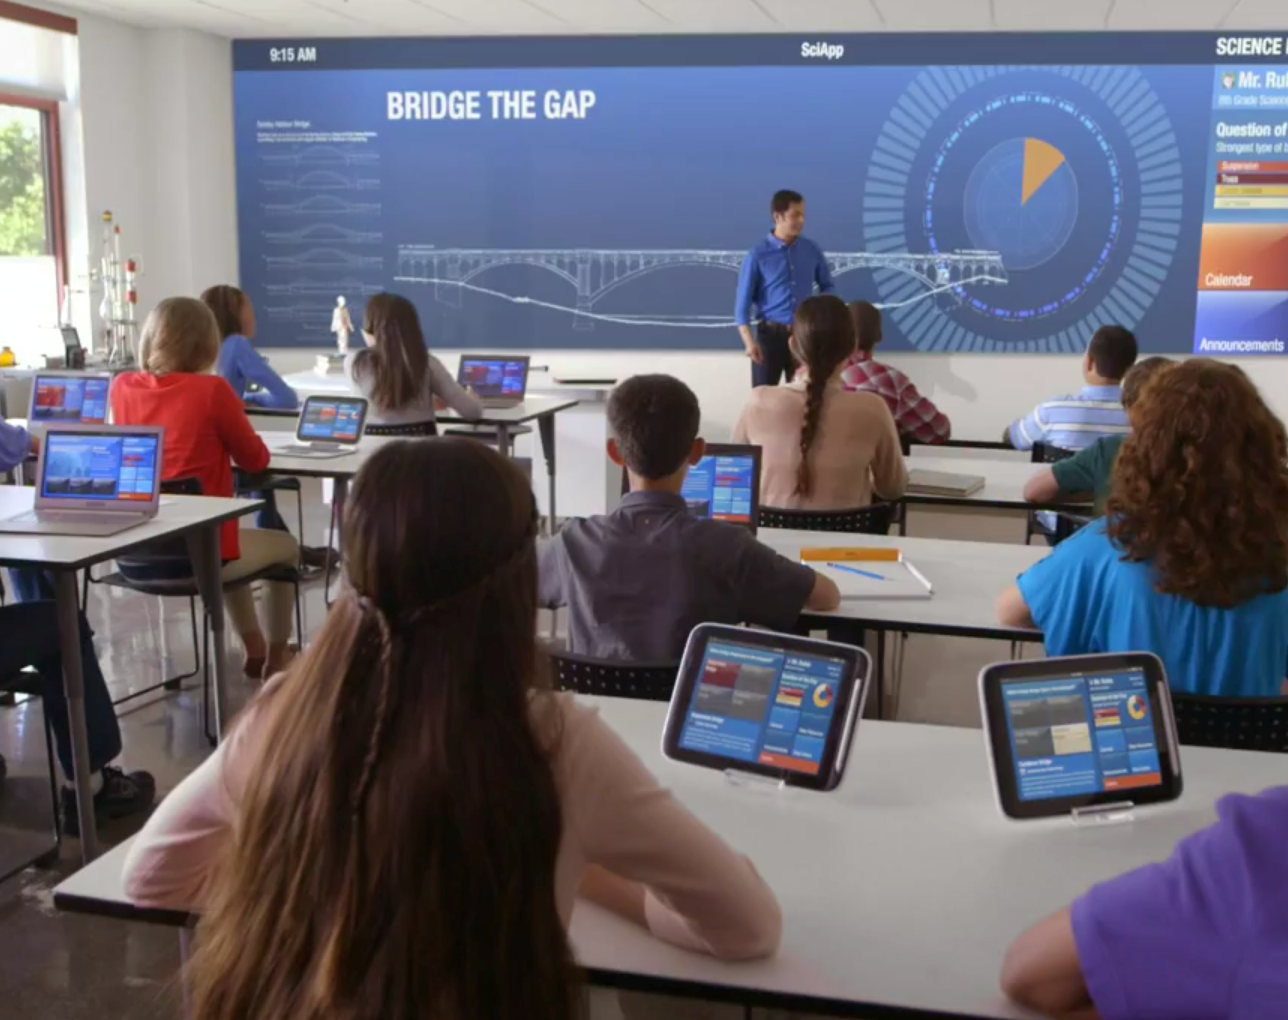 Mobile Technology In The Classroom